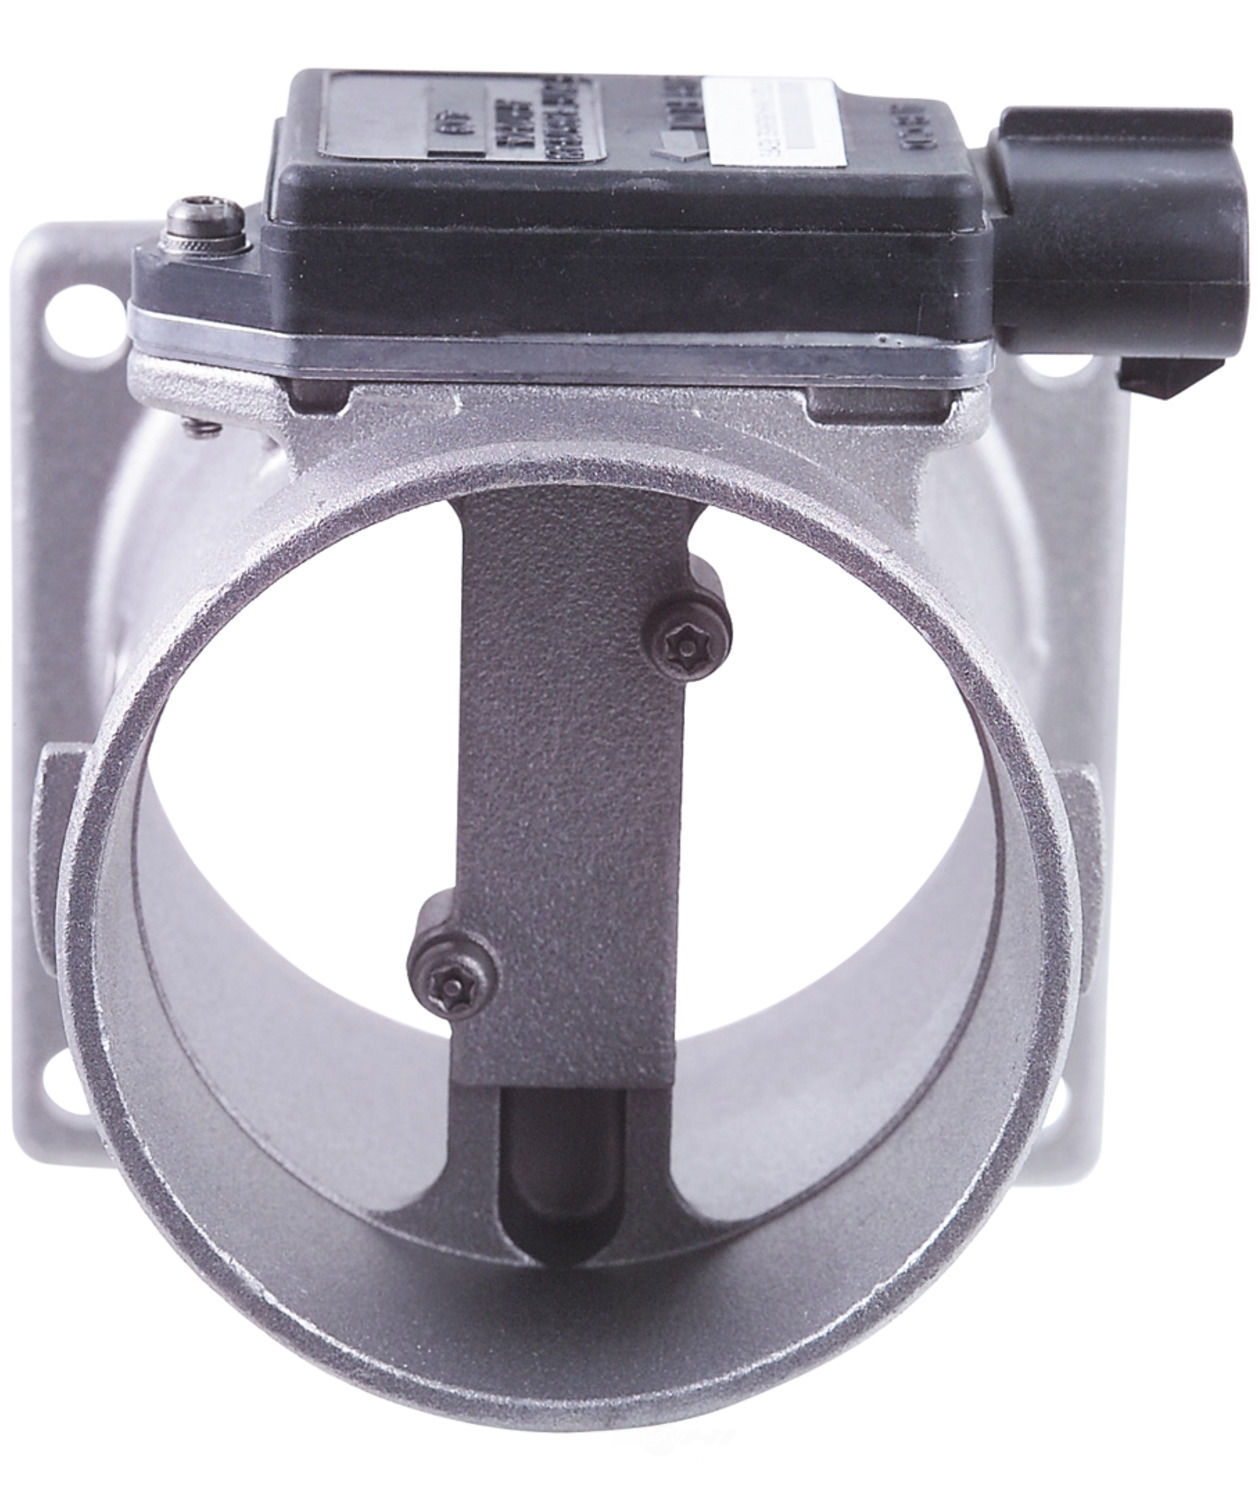 CARDONE REMAN - Mass Air Flow Sensor - A1C 74-9508